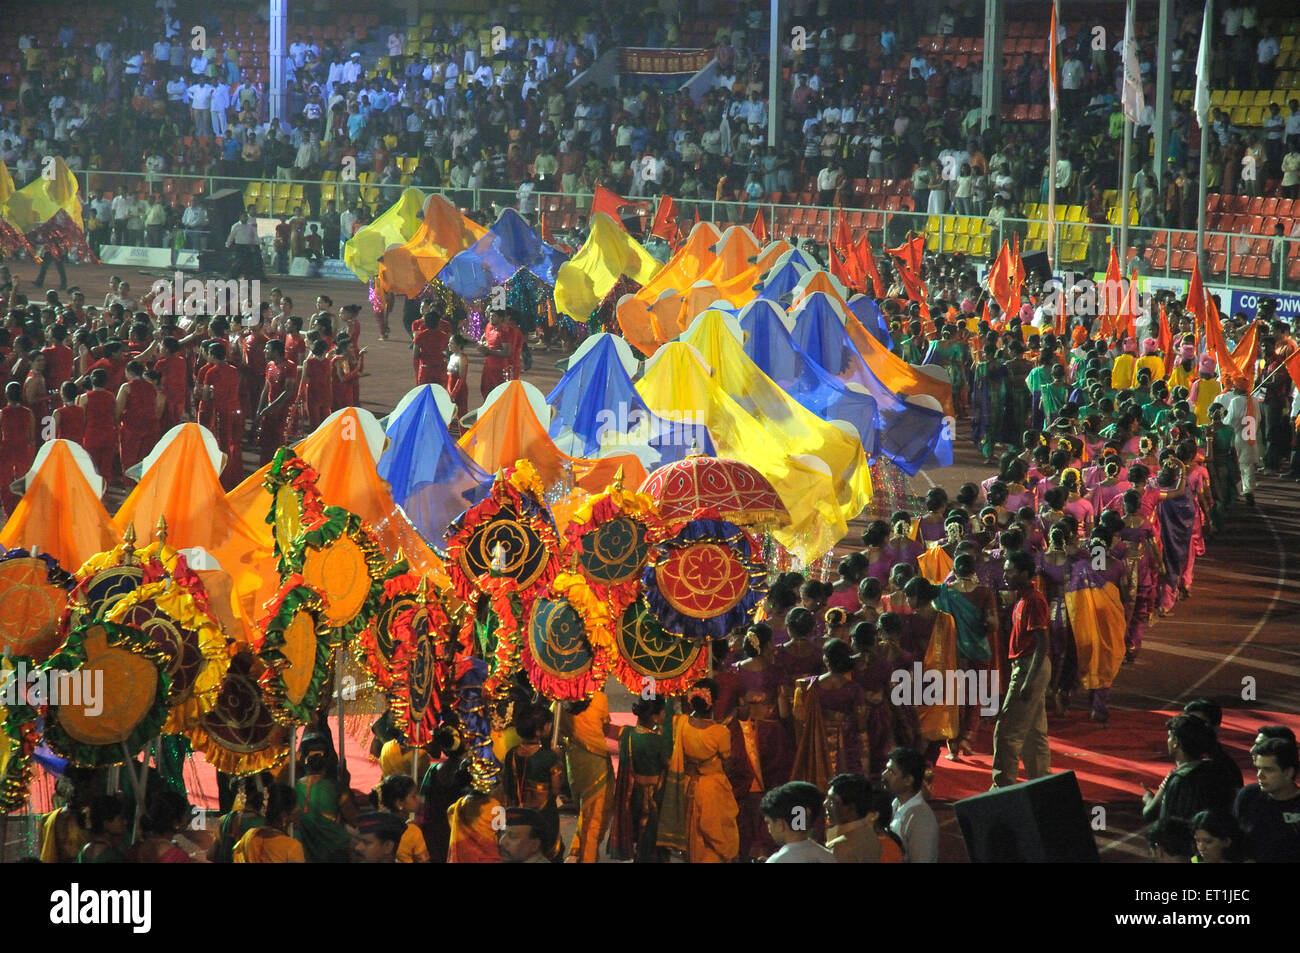 Grandeur of closing ceremony with parade of performers ; Pune ; Maharashtra ; India 18 October 2008 - Stock Image